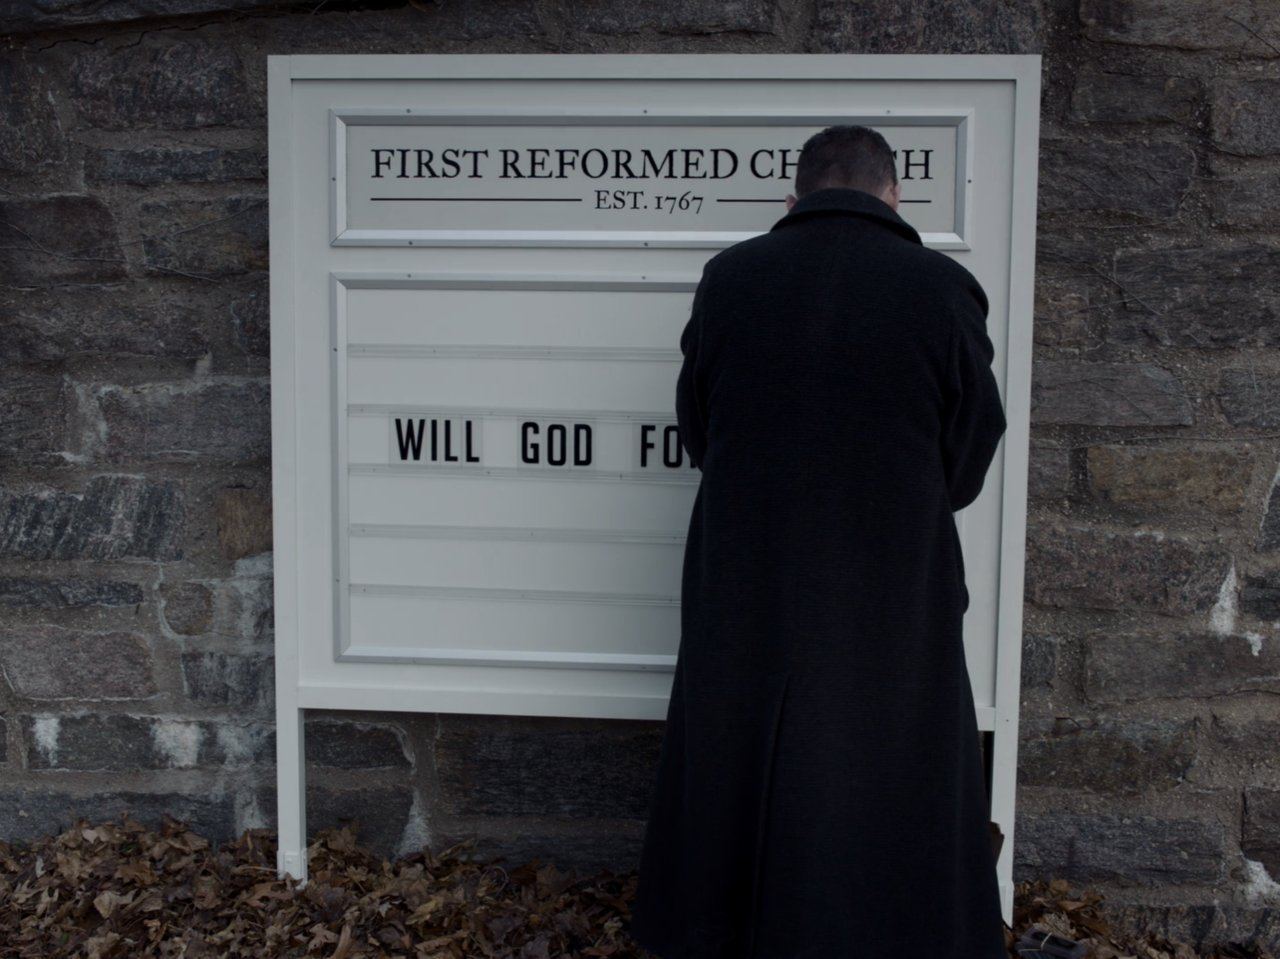 """One Perfect Shot on Twitter: """"FIRST REFORMED (2018) Cinematography by  Alexander Dynan Directed by Paul Schrader Read about its visual austerity:  https://t.co/RY2o4MjqYG… https://t.co/iPwyfV7t42"""""""